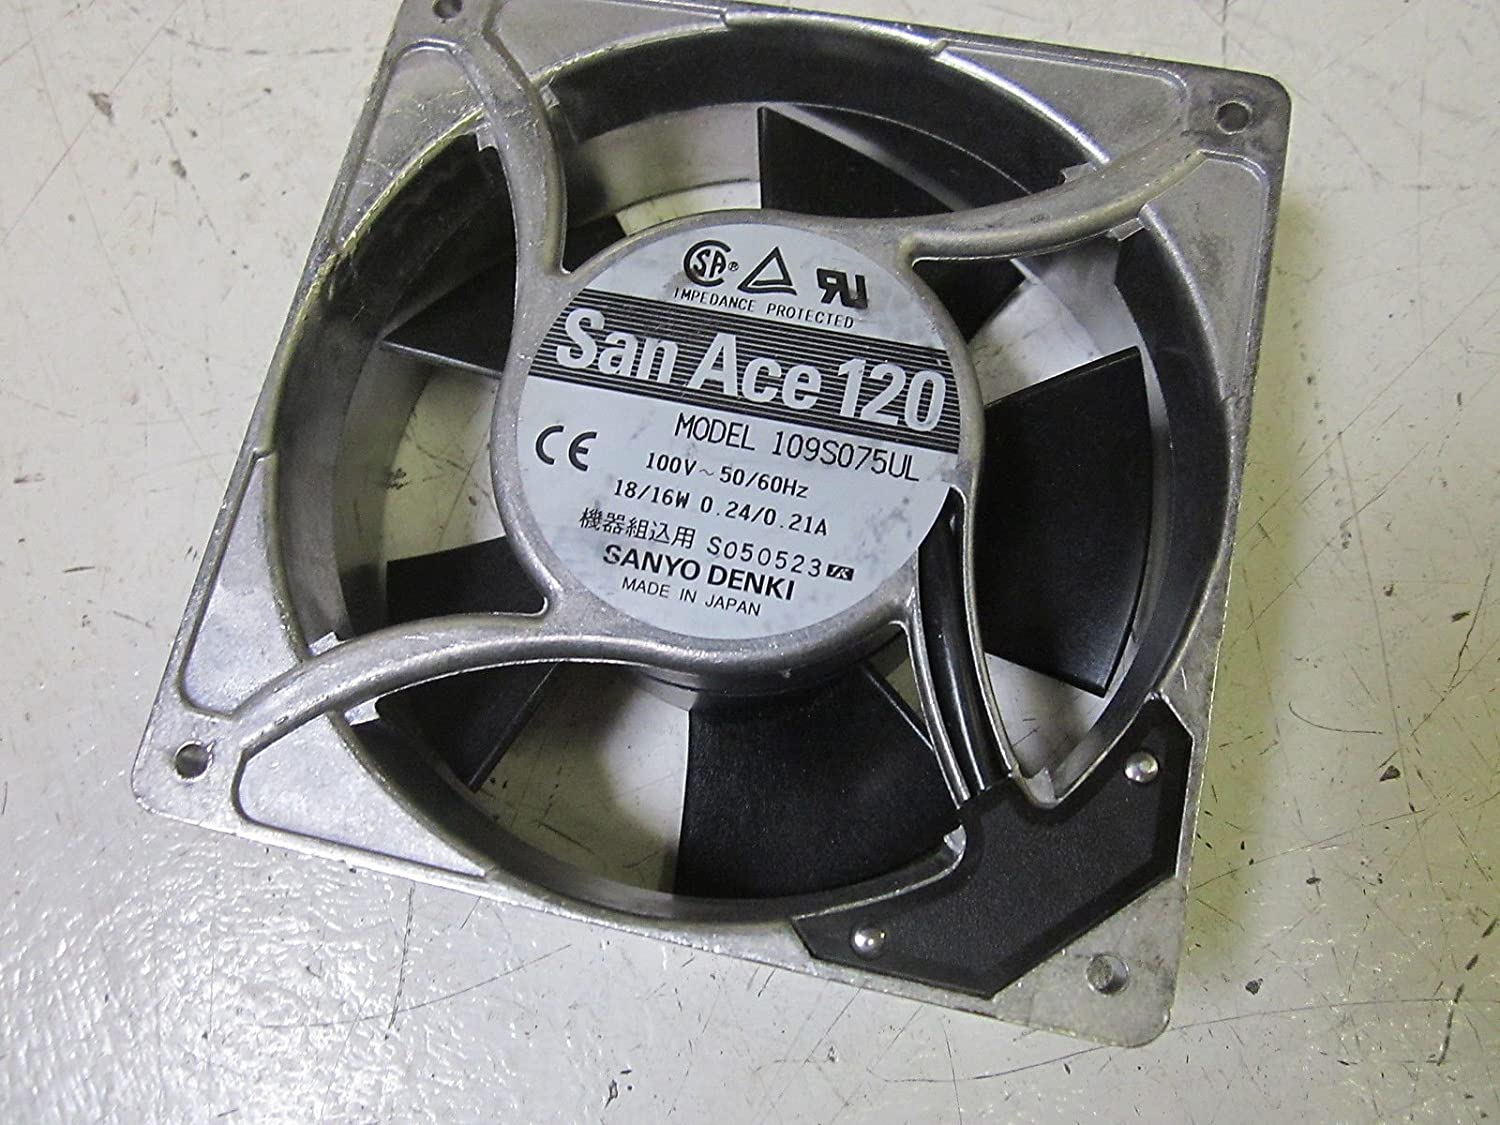 Sanyo Denki 109s075ul San Ace 120 Fan 100vnew Out Of A Box Amazon Com Industrial Scientific